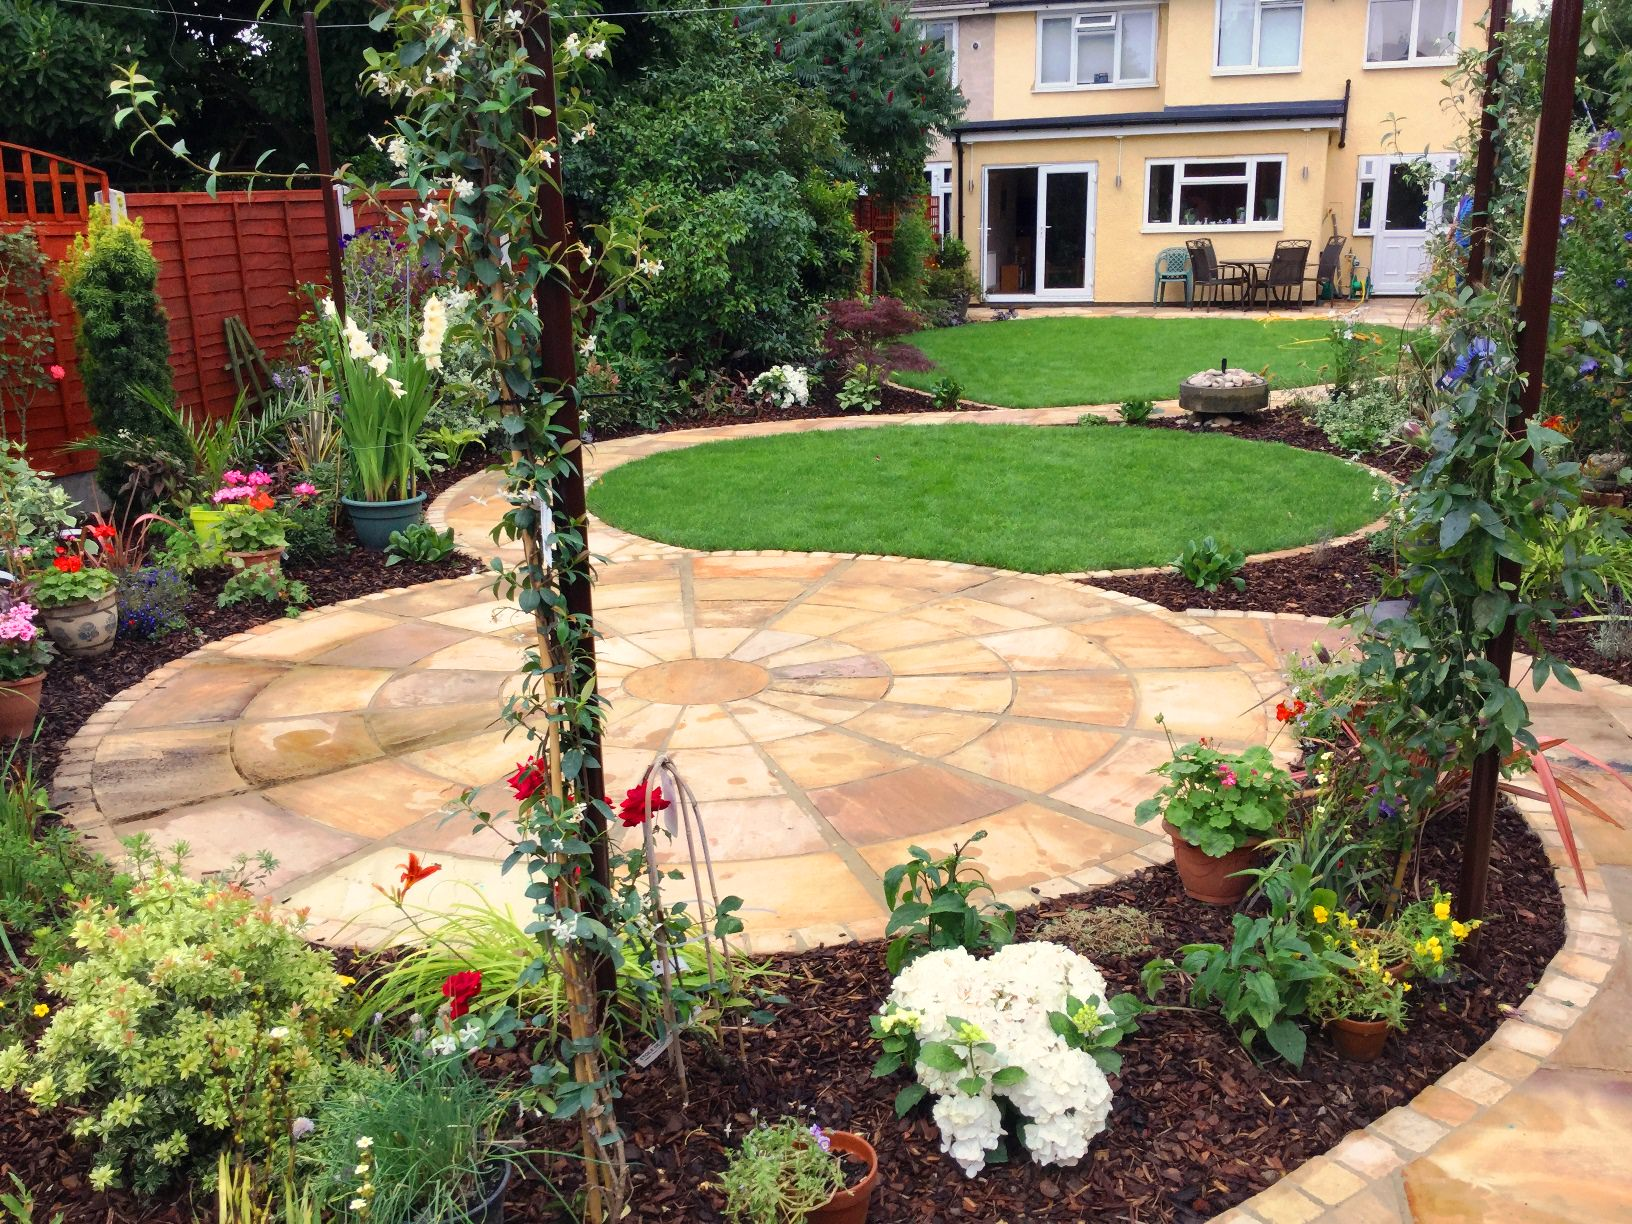 Elated in Elm Park | Floral & Hardy | London | UK on Long Backyard Landscaping Ideas id=60230